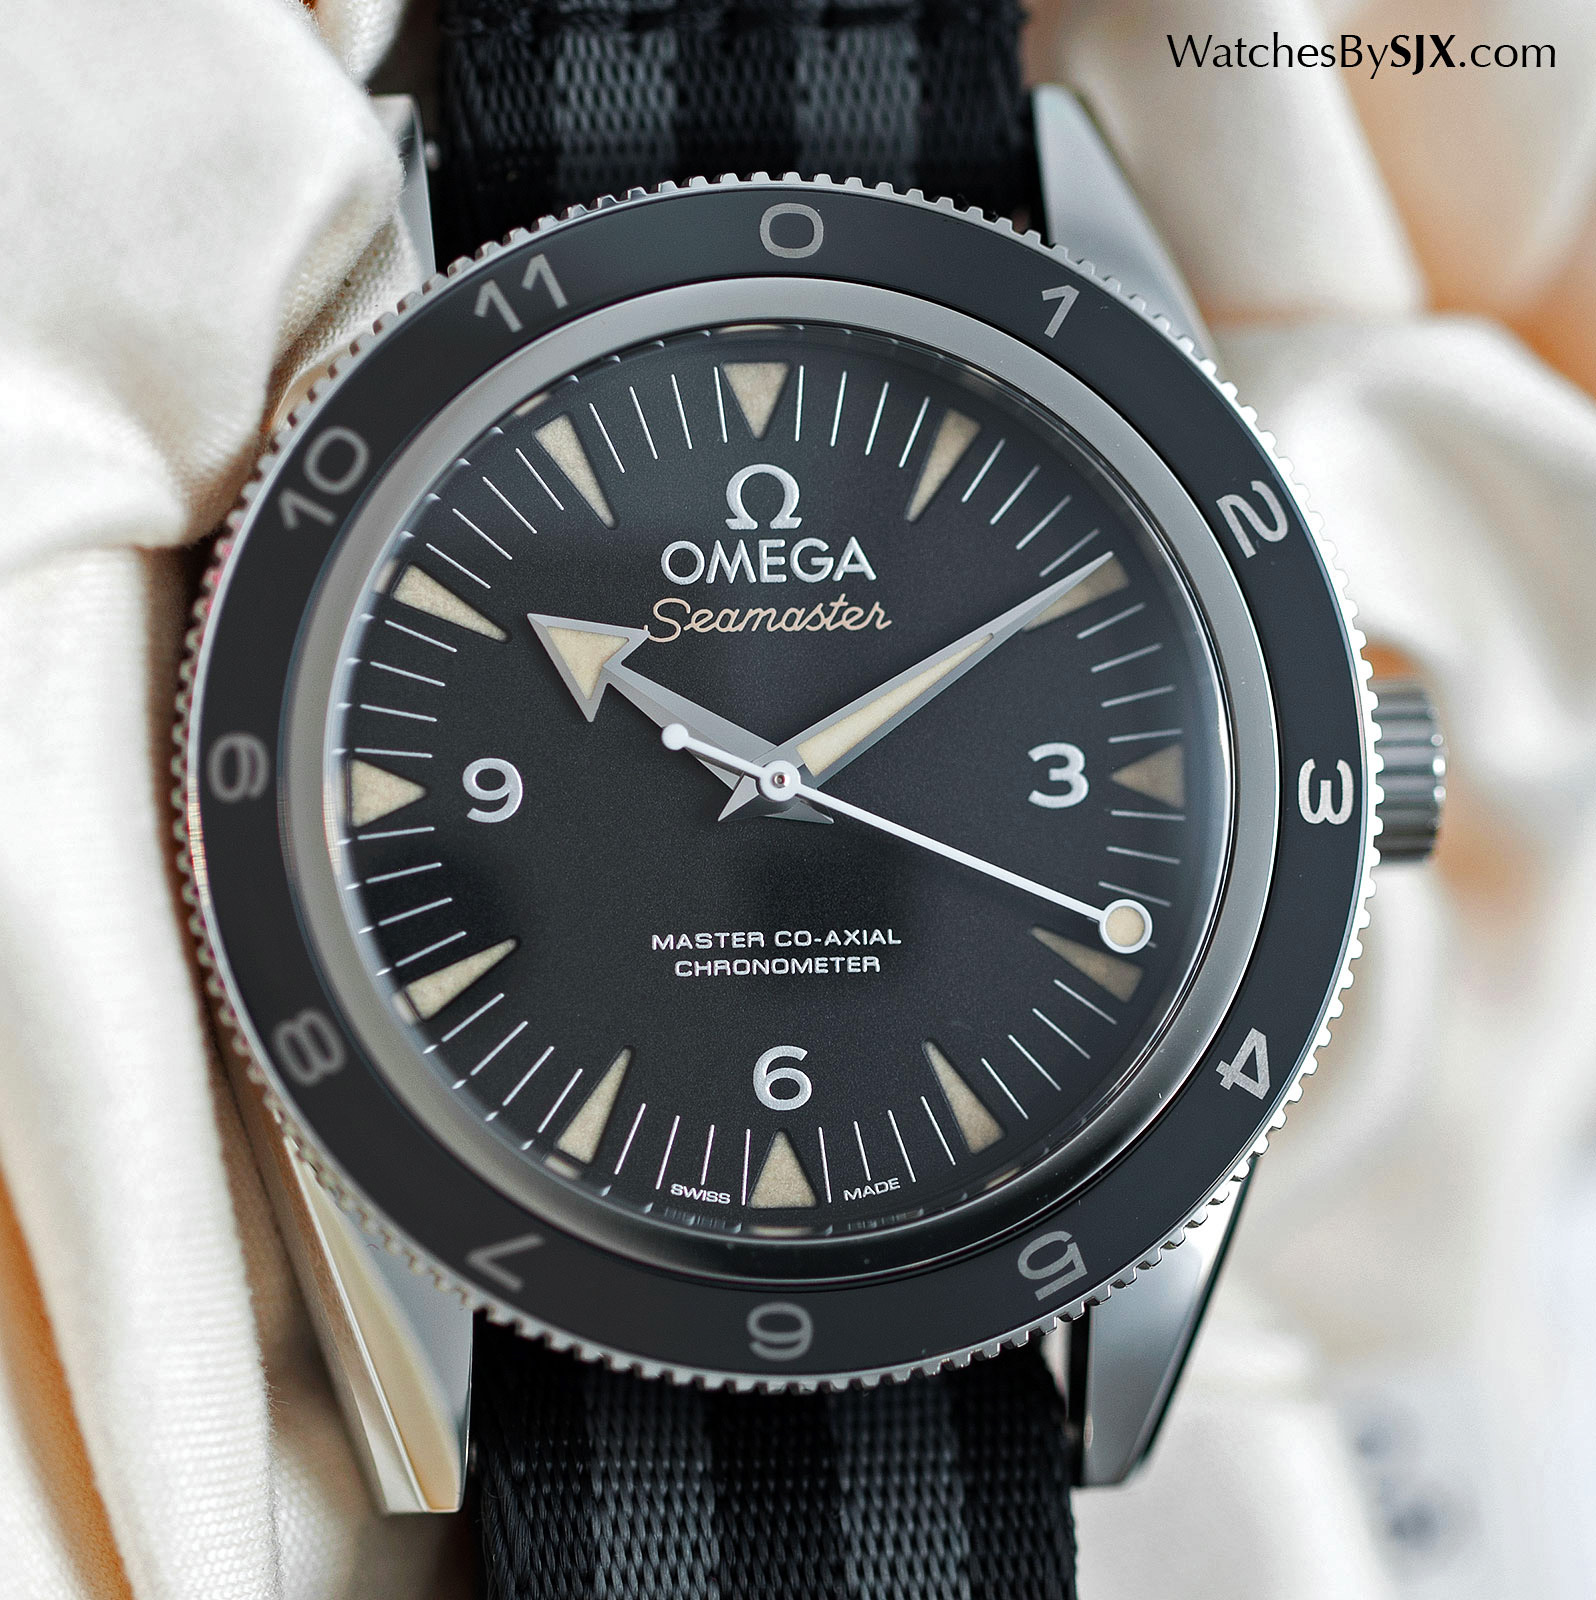 Watches by sjx up close with the omega seamaster 300 - Omega dive watch ...